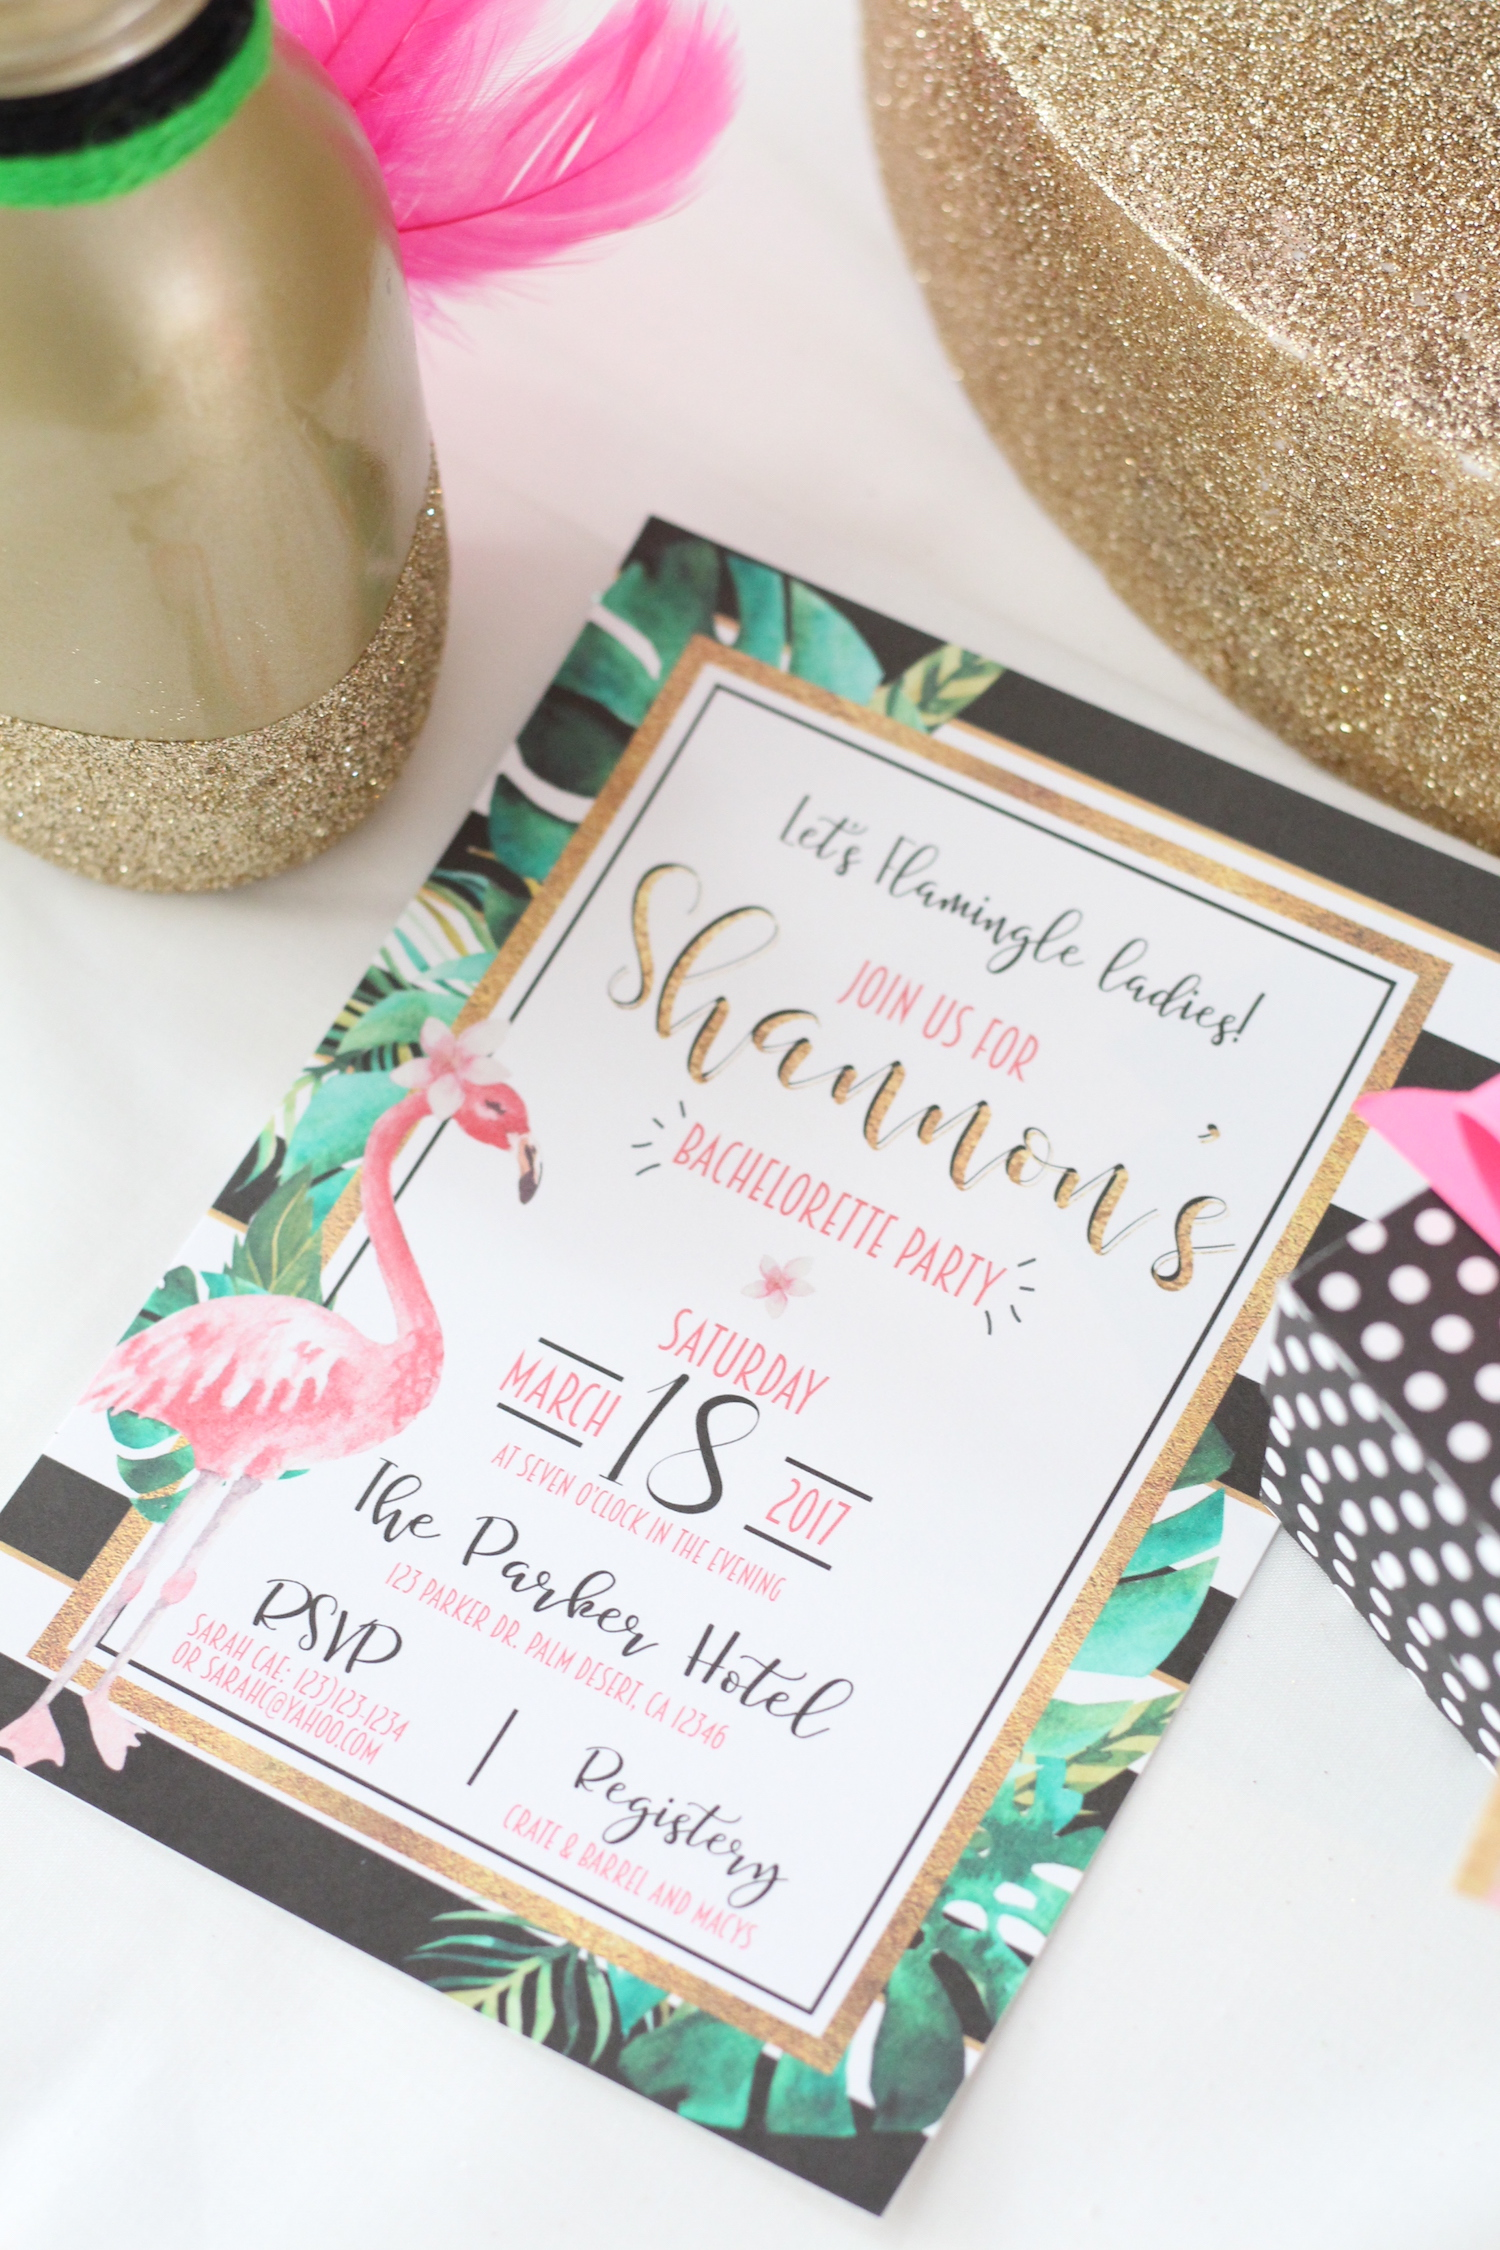 Printable Let's Flamingo Bachelorette Party Invitation or Tropcial Bridal Shower Invitation - a fun flamingo party theme in pink, white, black, green and gold. As seen on www.BrendasWeddingBlog.com